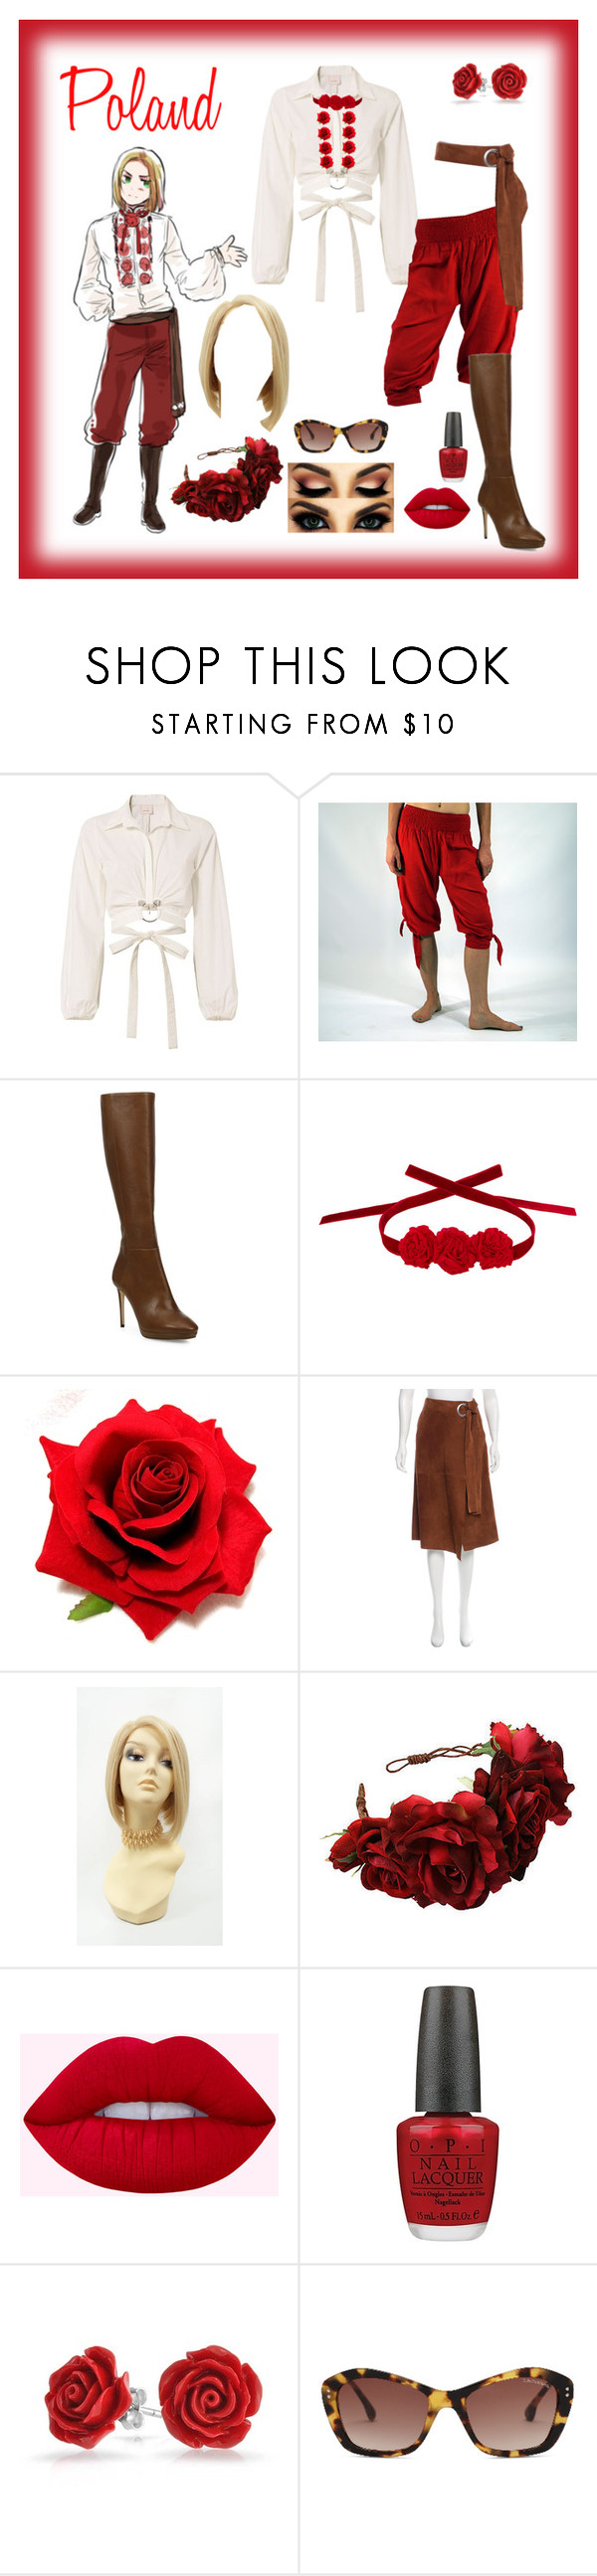 """""""Hetalia: Poland"""" by mrs-edelstein ❤ liked on Polyvore featuring Cinq à Sept, Jimmy Choo, Vjera Vilicnik, TIBI, Rock 'N Rose, OPI, Bling Jewelry and Oliver Goldsmith"""